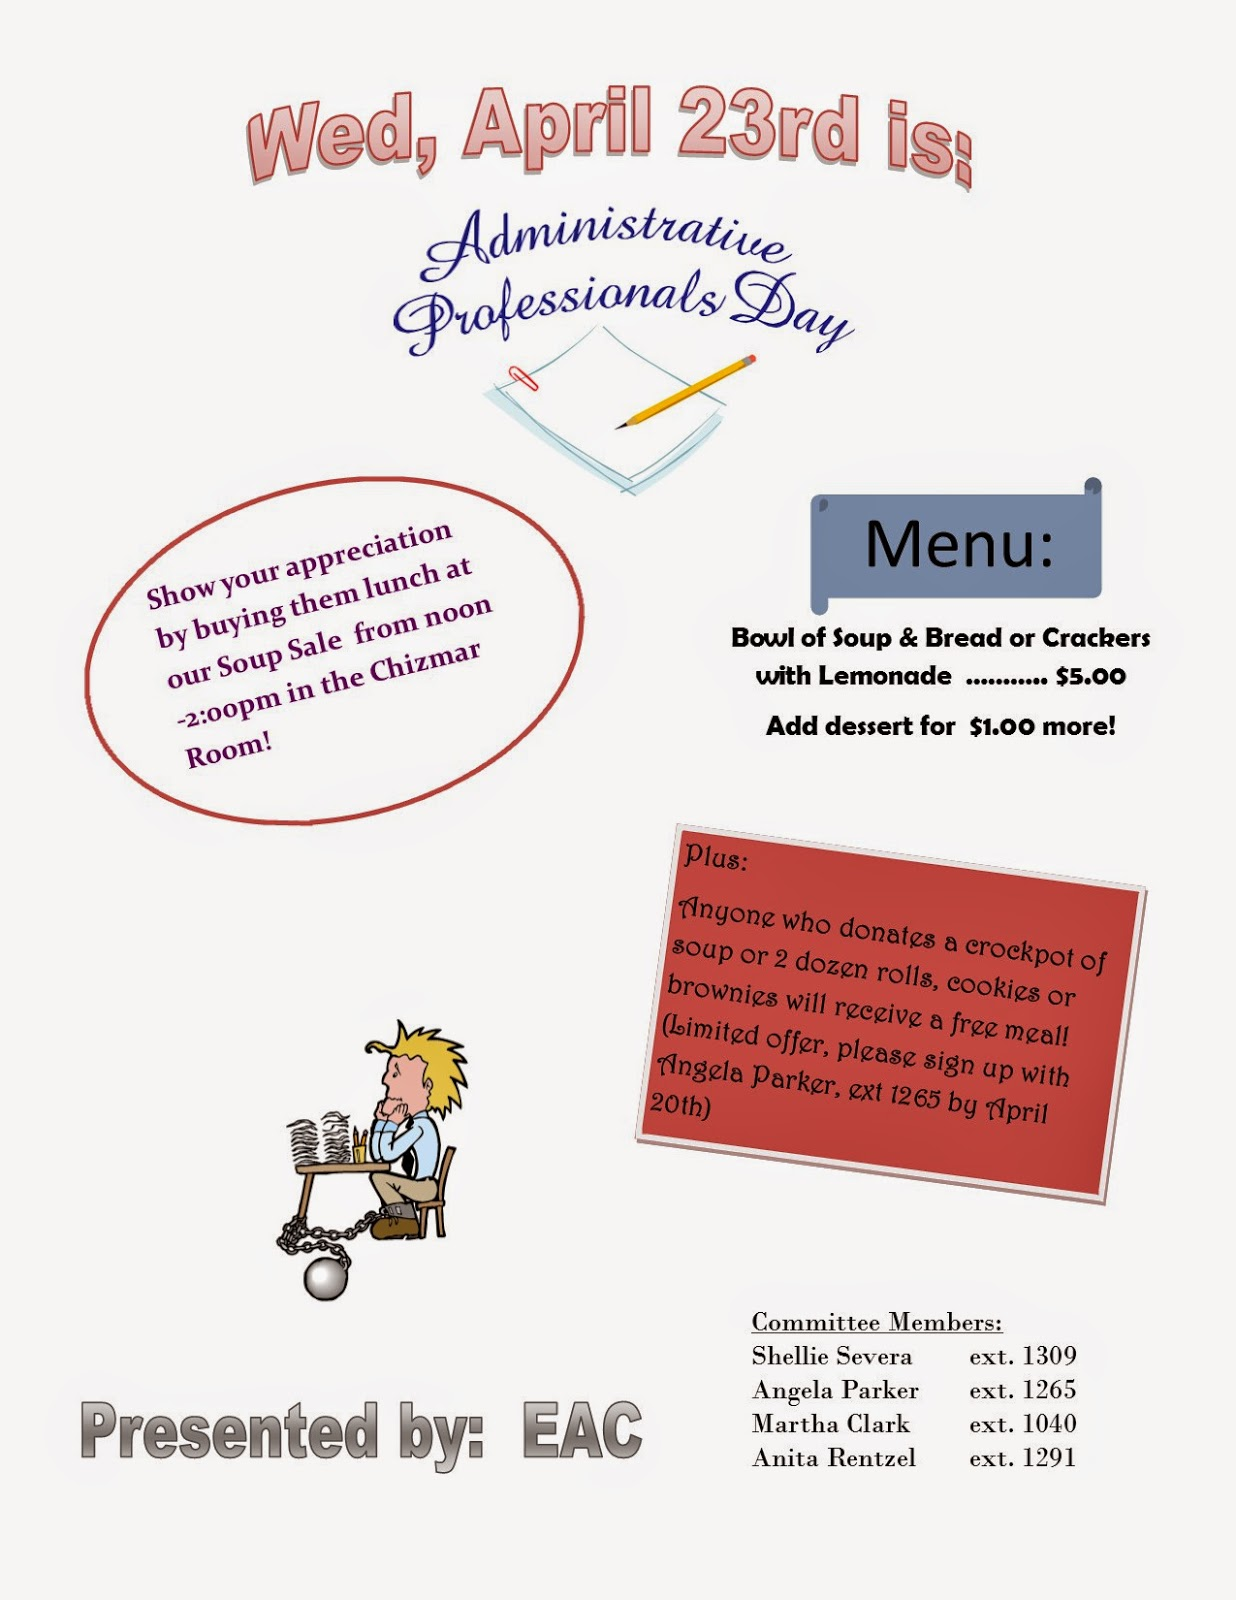 149432 additionally Creativity likewise Happy Administrative Professionals Day in addition Npd Week furthermore Happy Administrative Professionals Week 2014. on celebrate administrative professionals day